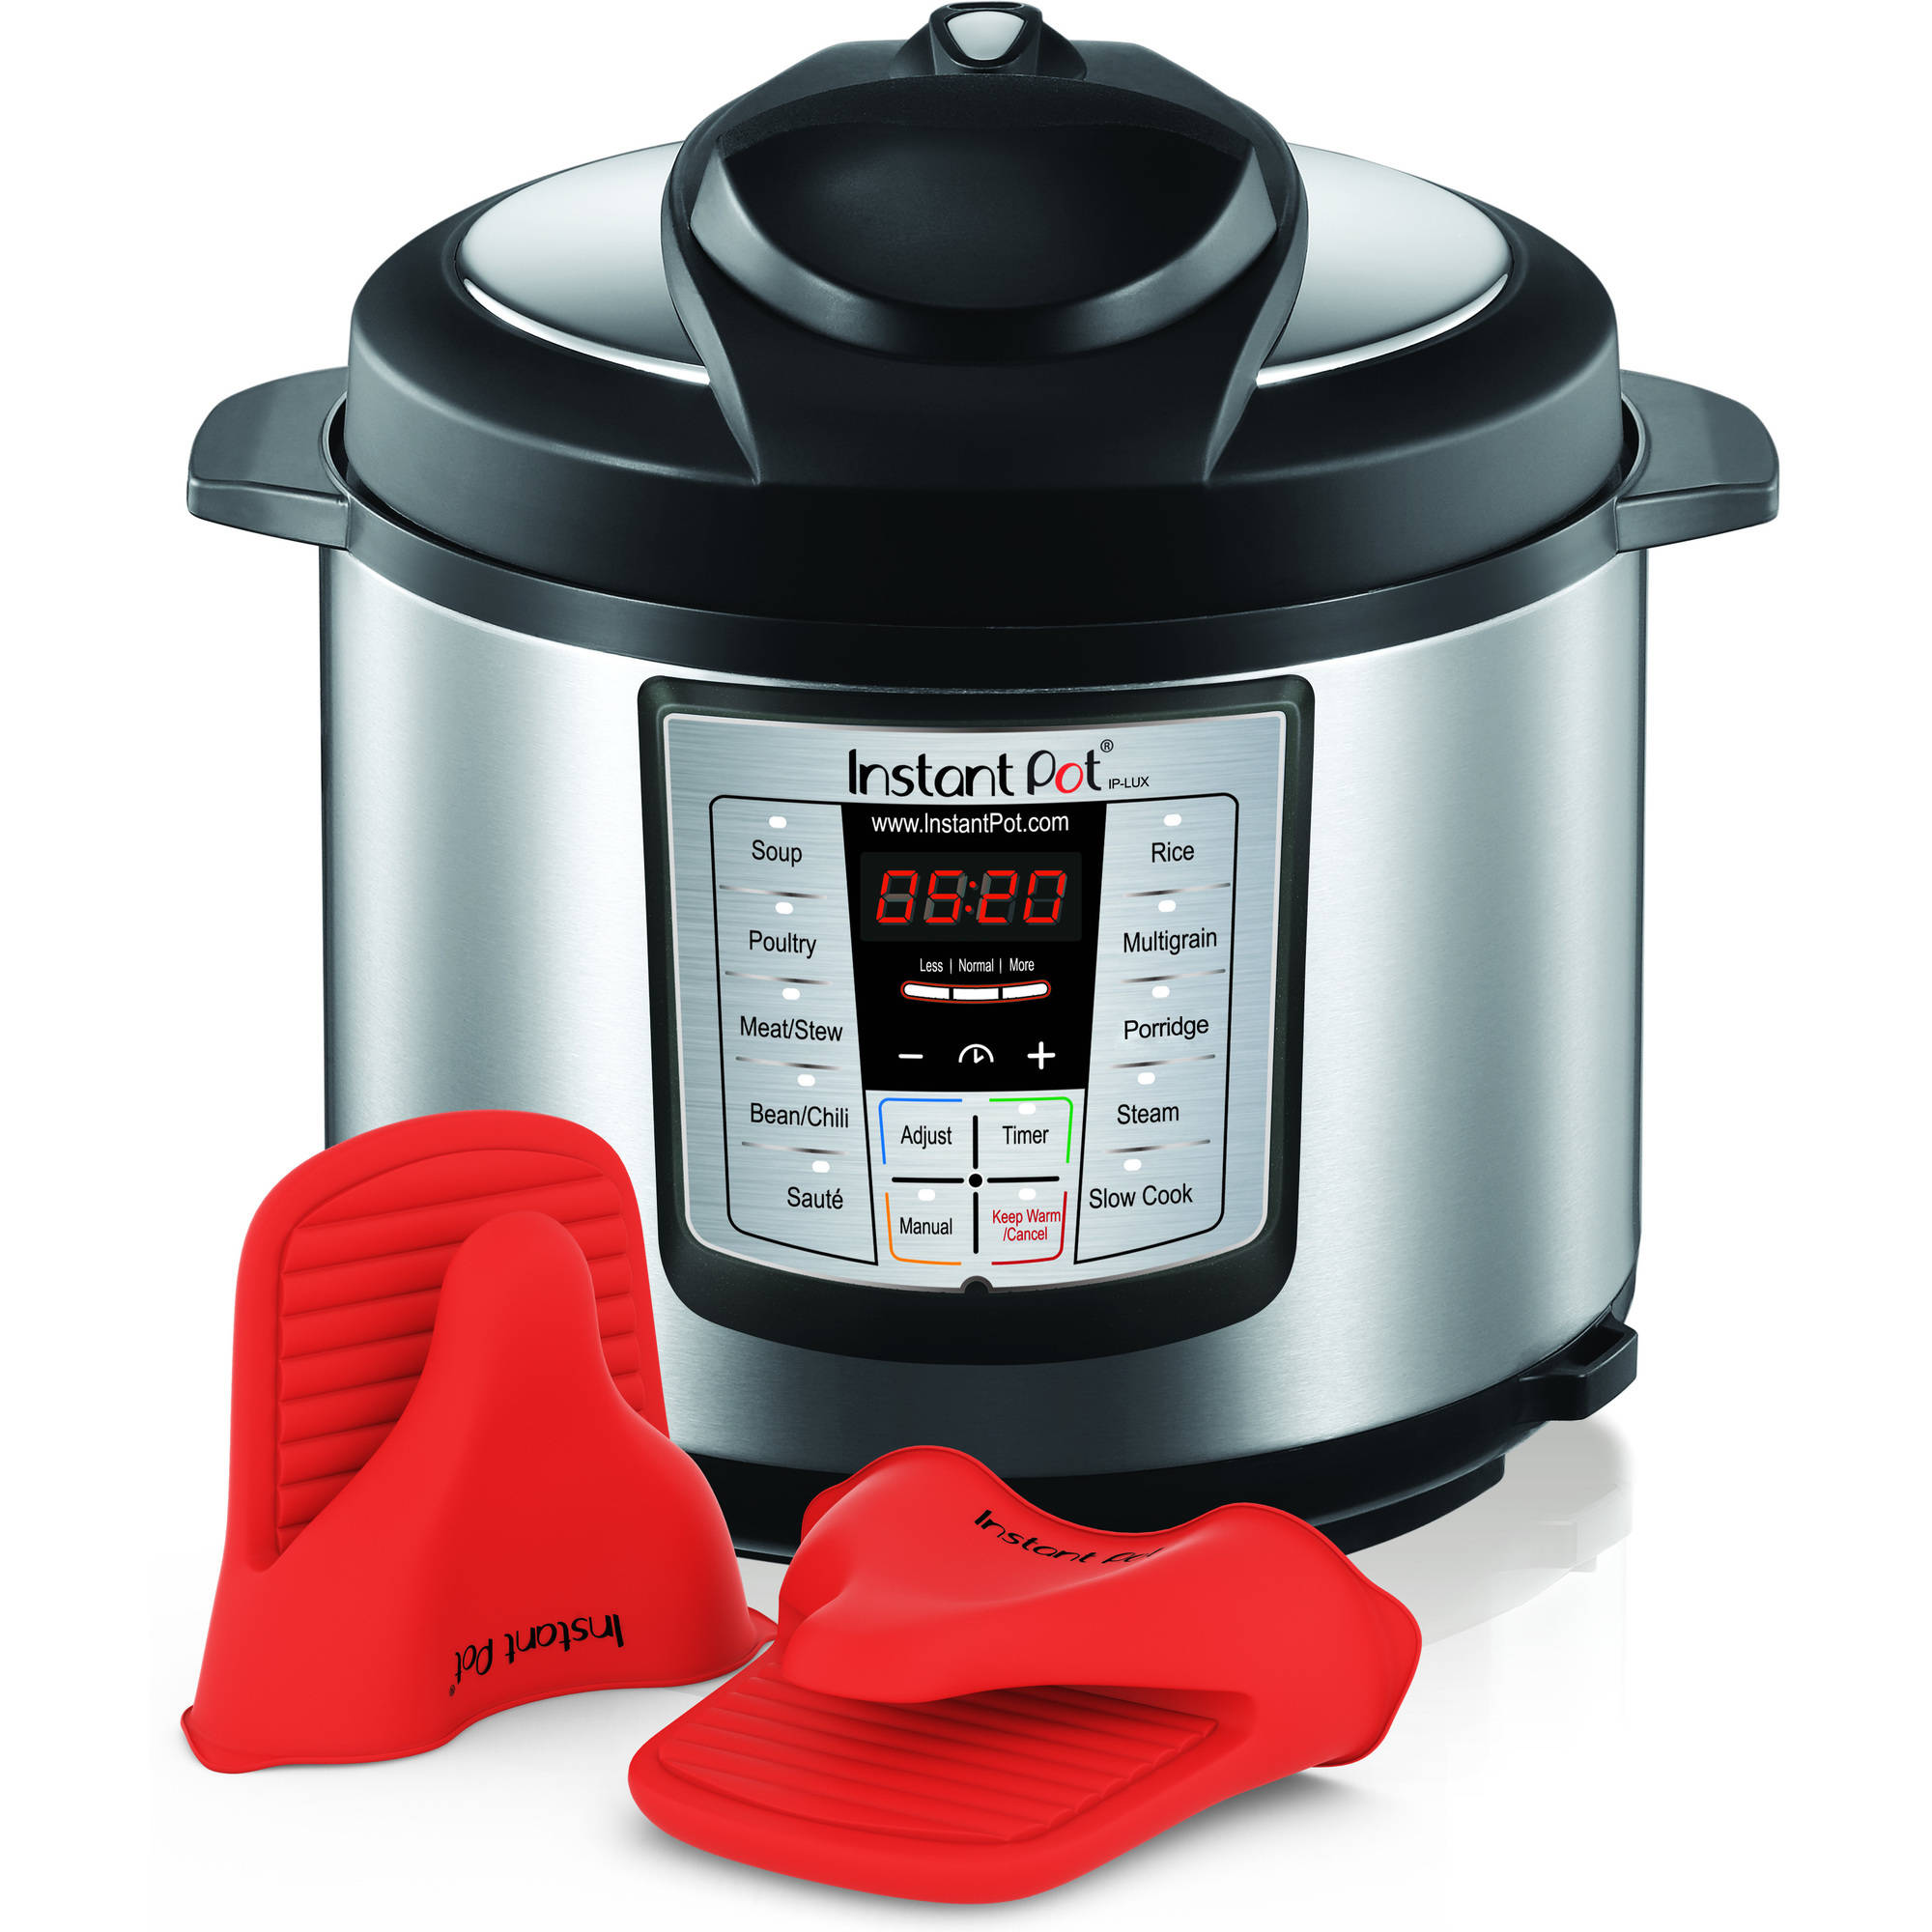 Instant Pot IP-LUX60-ENW Stainless Steel 6-in-1 Pressure Cooker with Mini Mitts